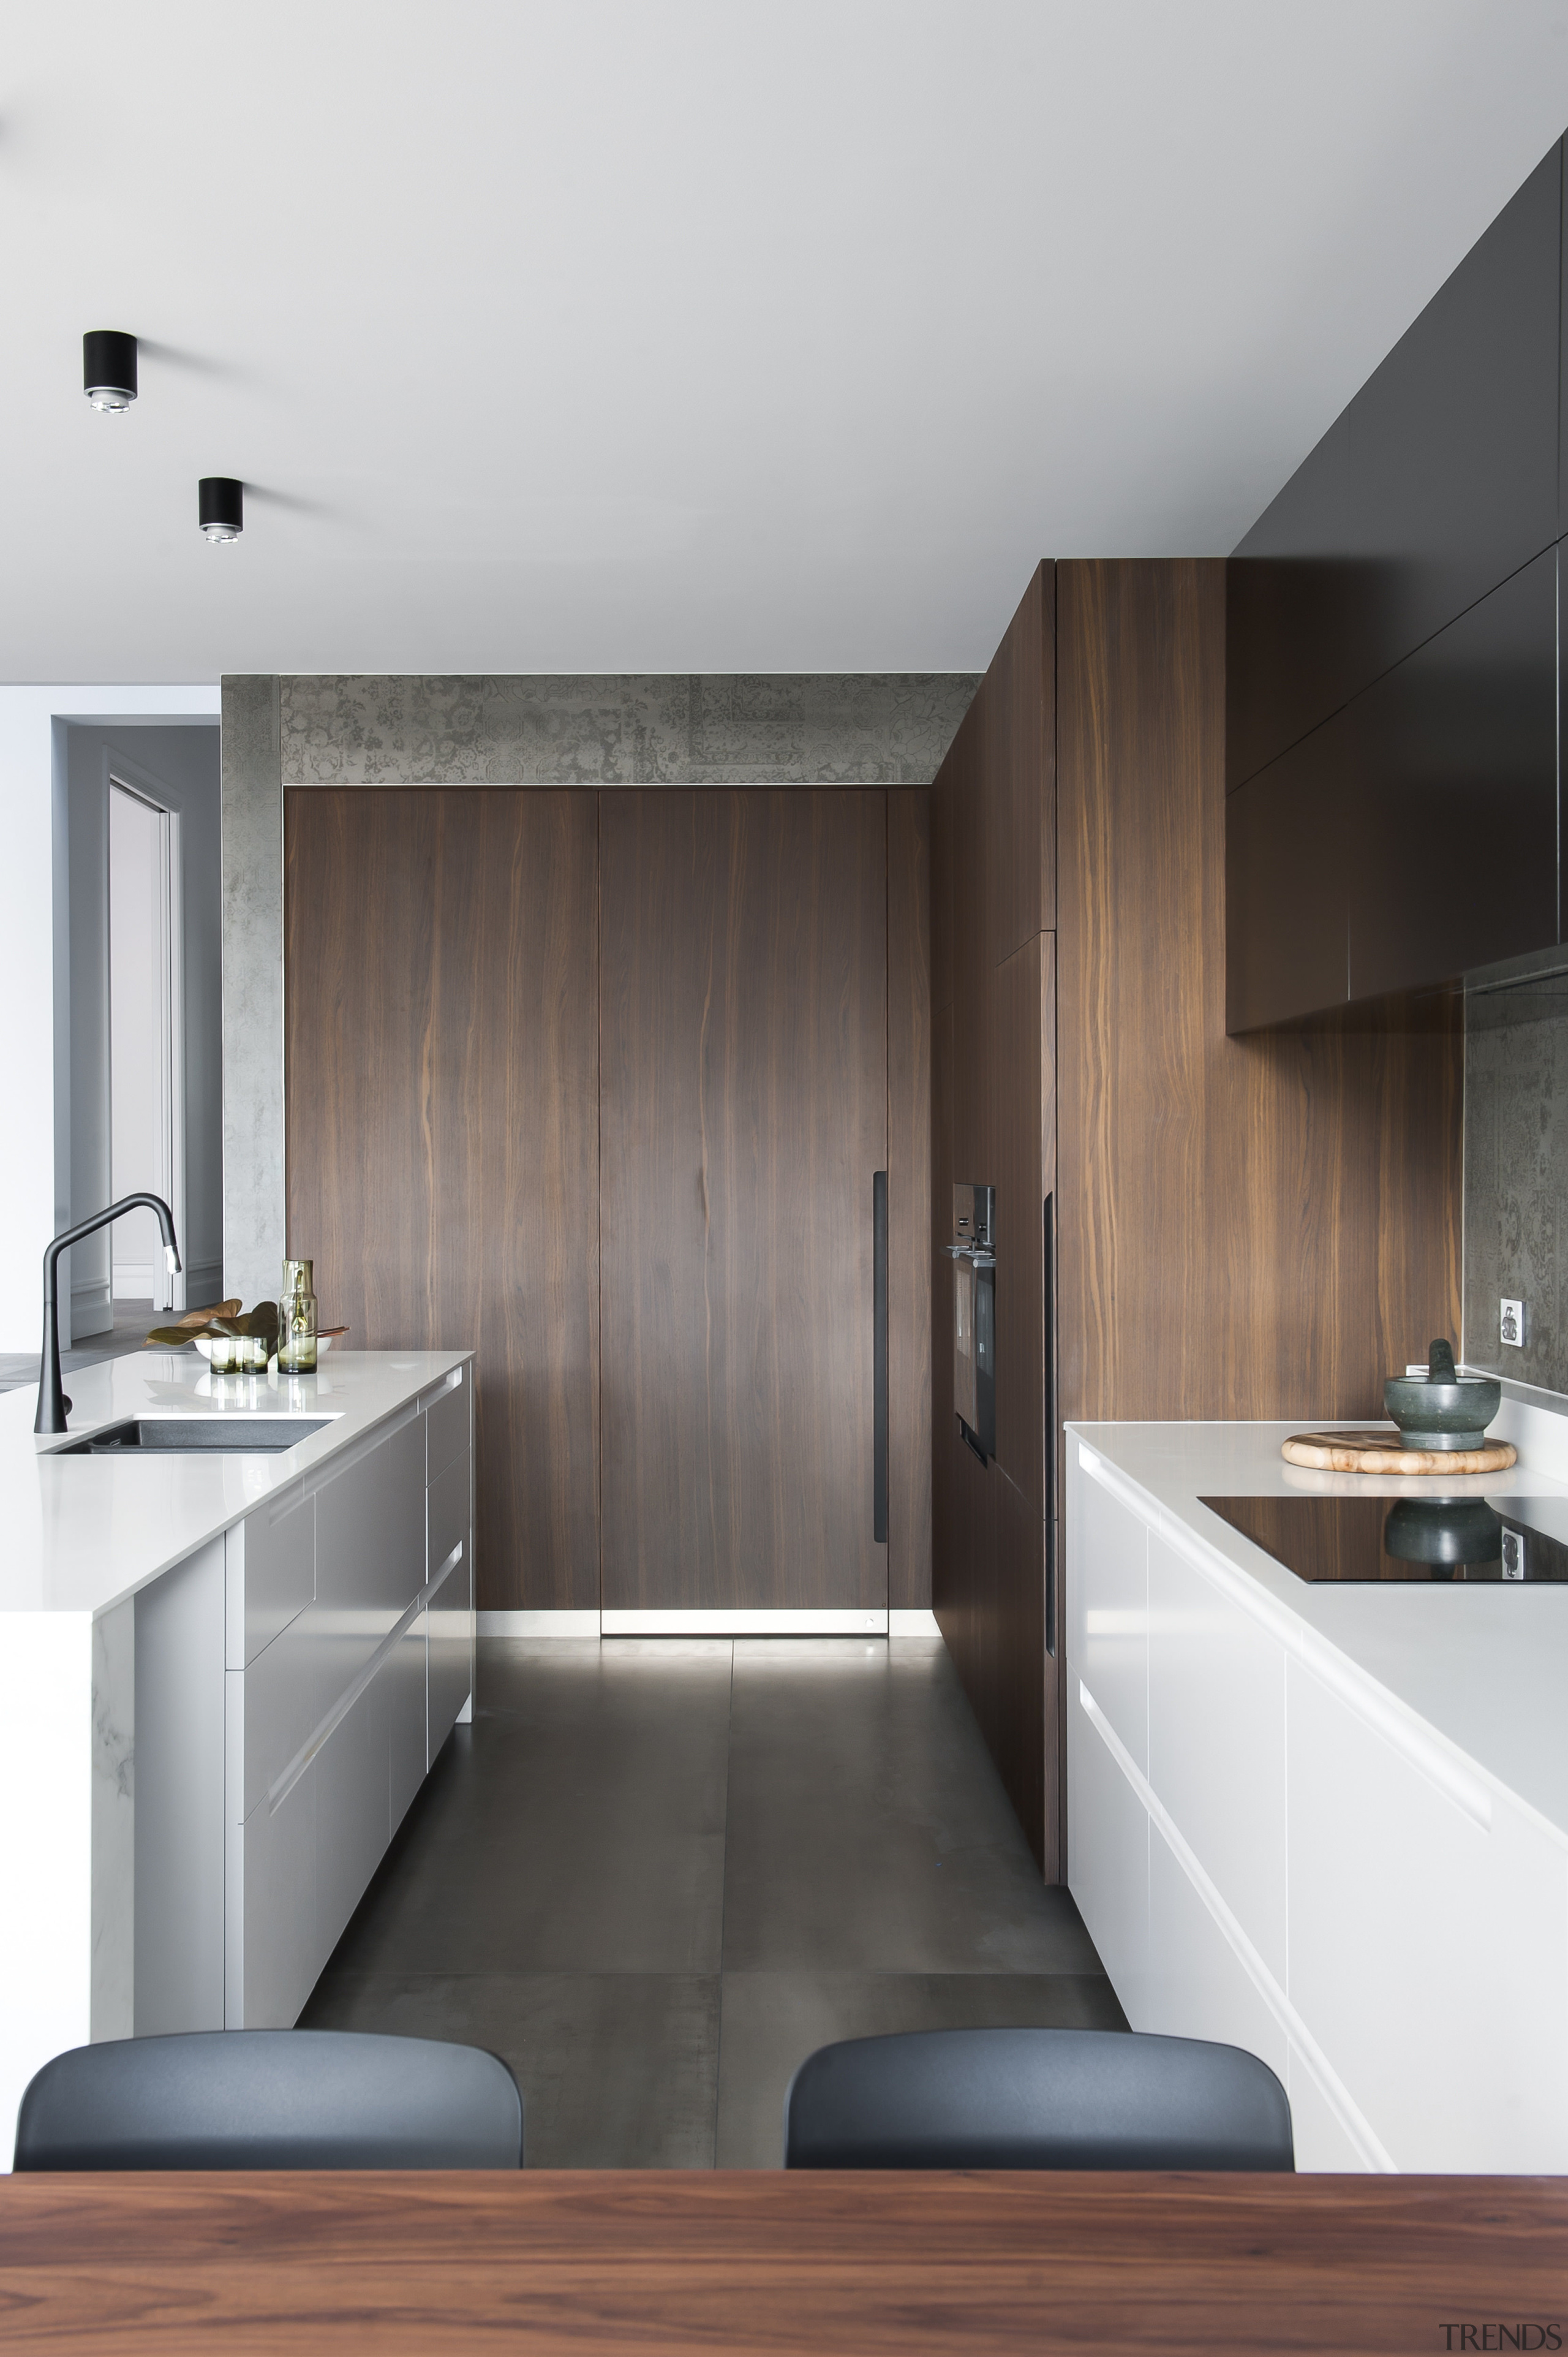 With the door and wall of the laundry architecture, bathroom, cabinetry, countertop, floor, interior design, kitchen, product design, room, sink, tap, white